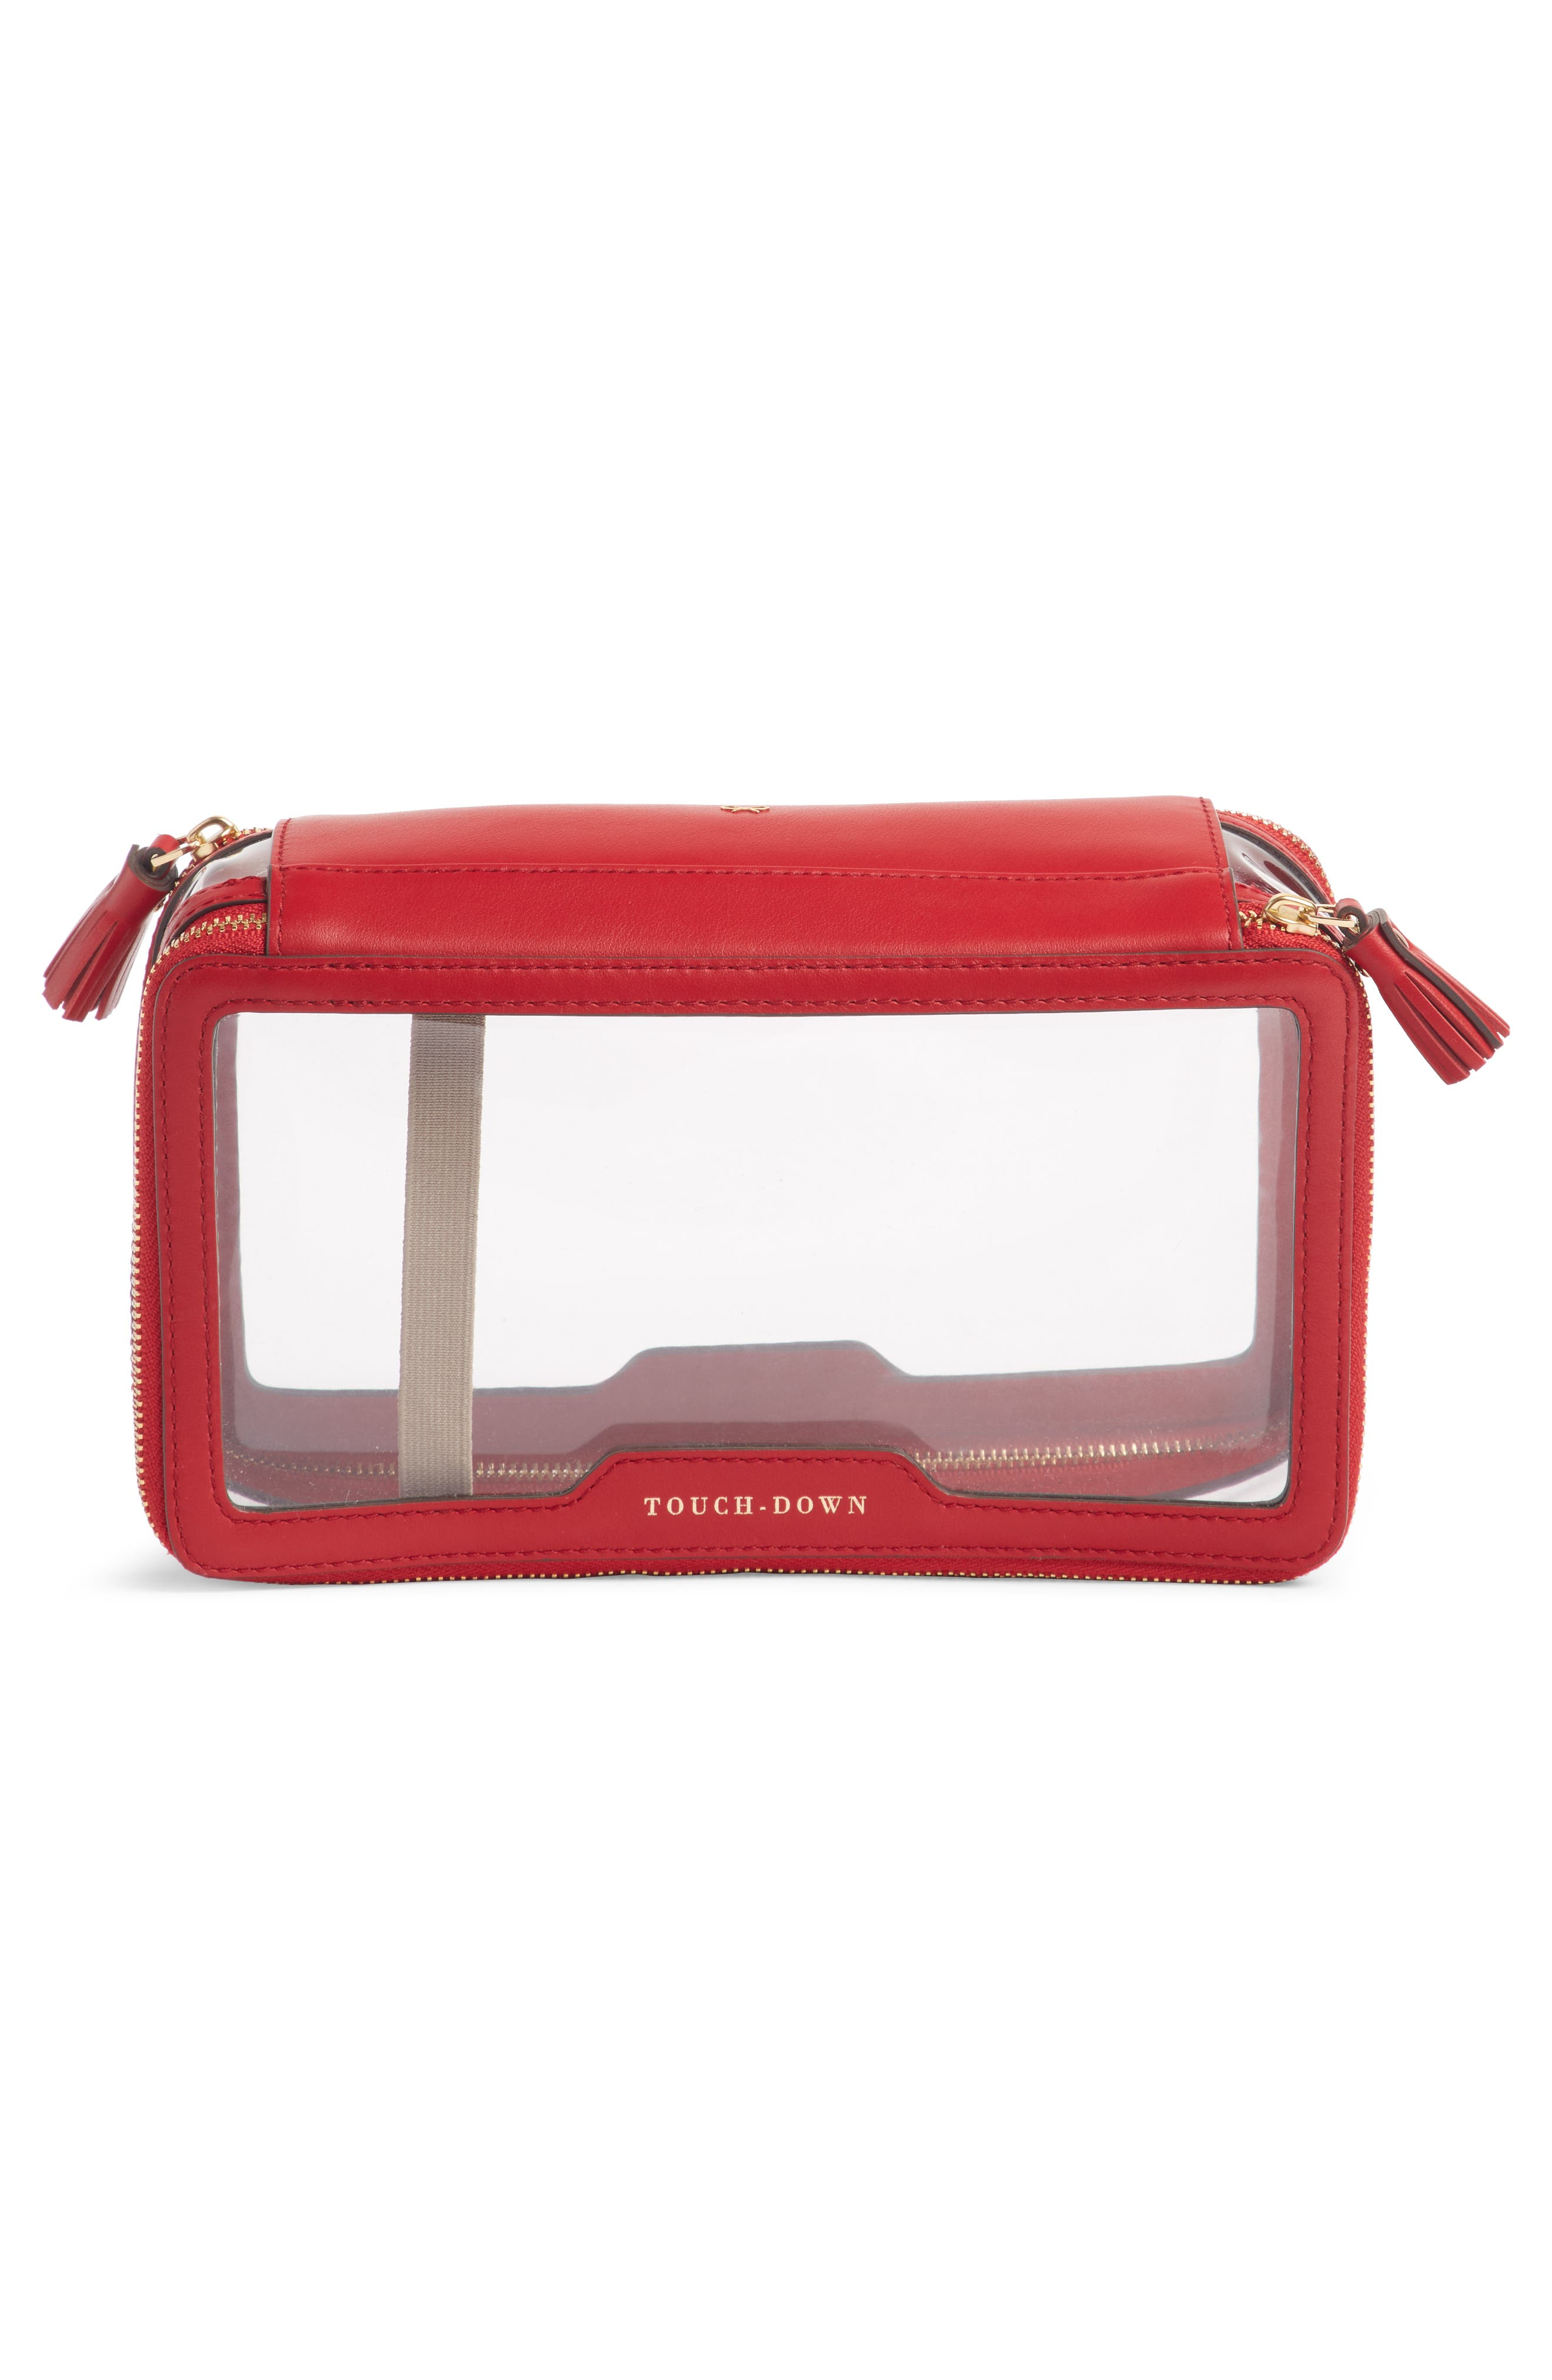 Inflight Clear Cosmetics Case,                             Alternate thumbnail 3, color,                             600